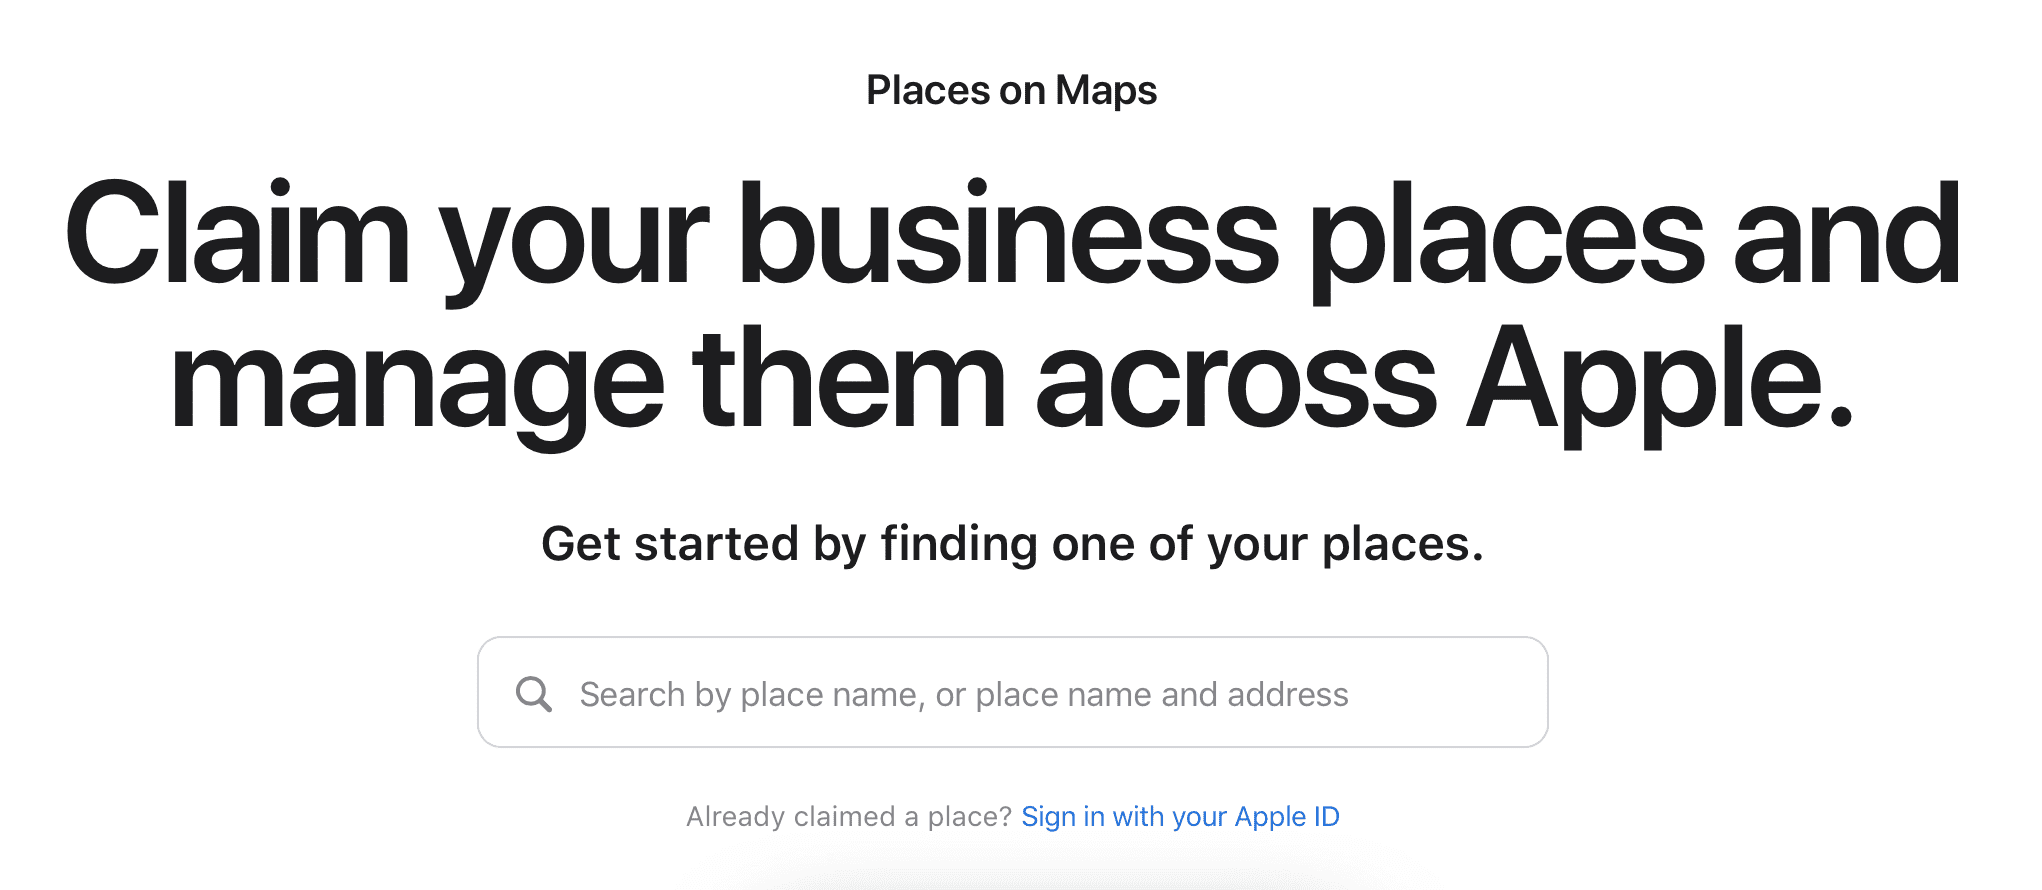 With Apple Places on Maps, you can claim your business places and manage them across Apple.